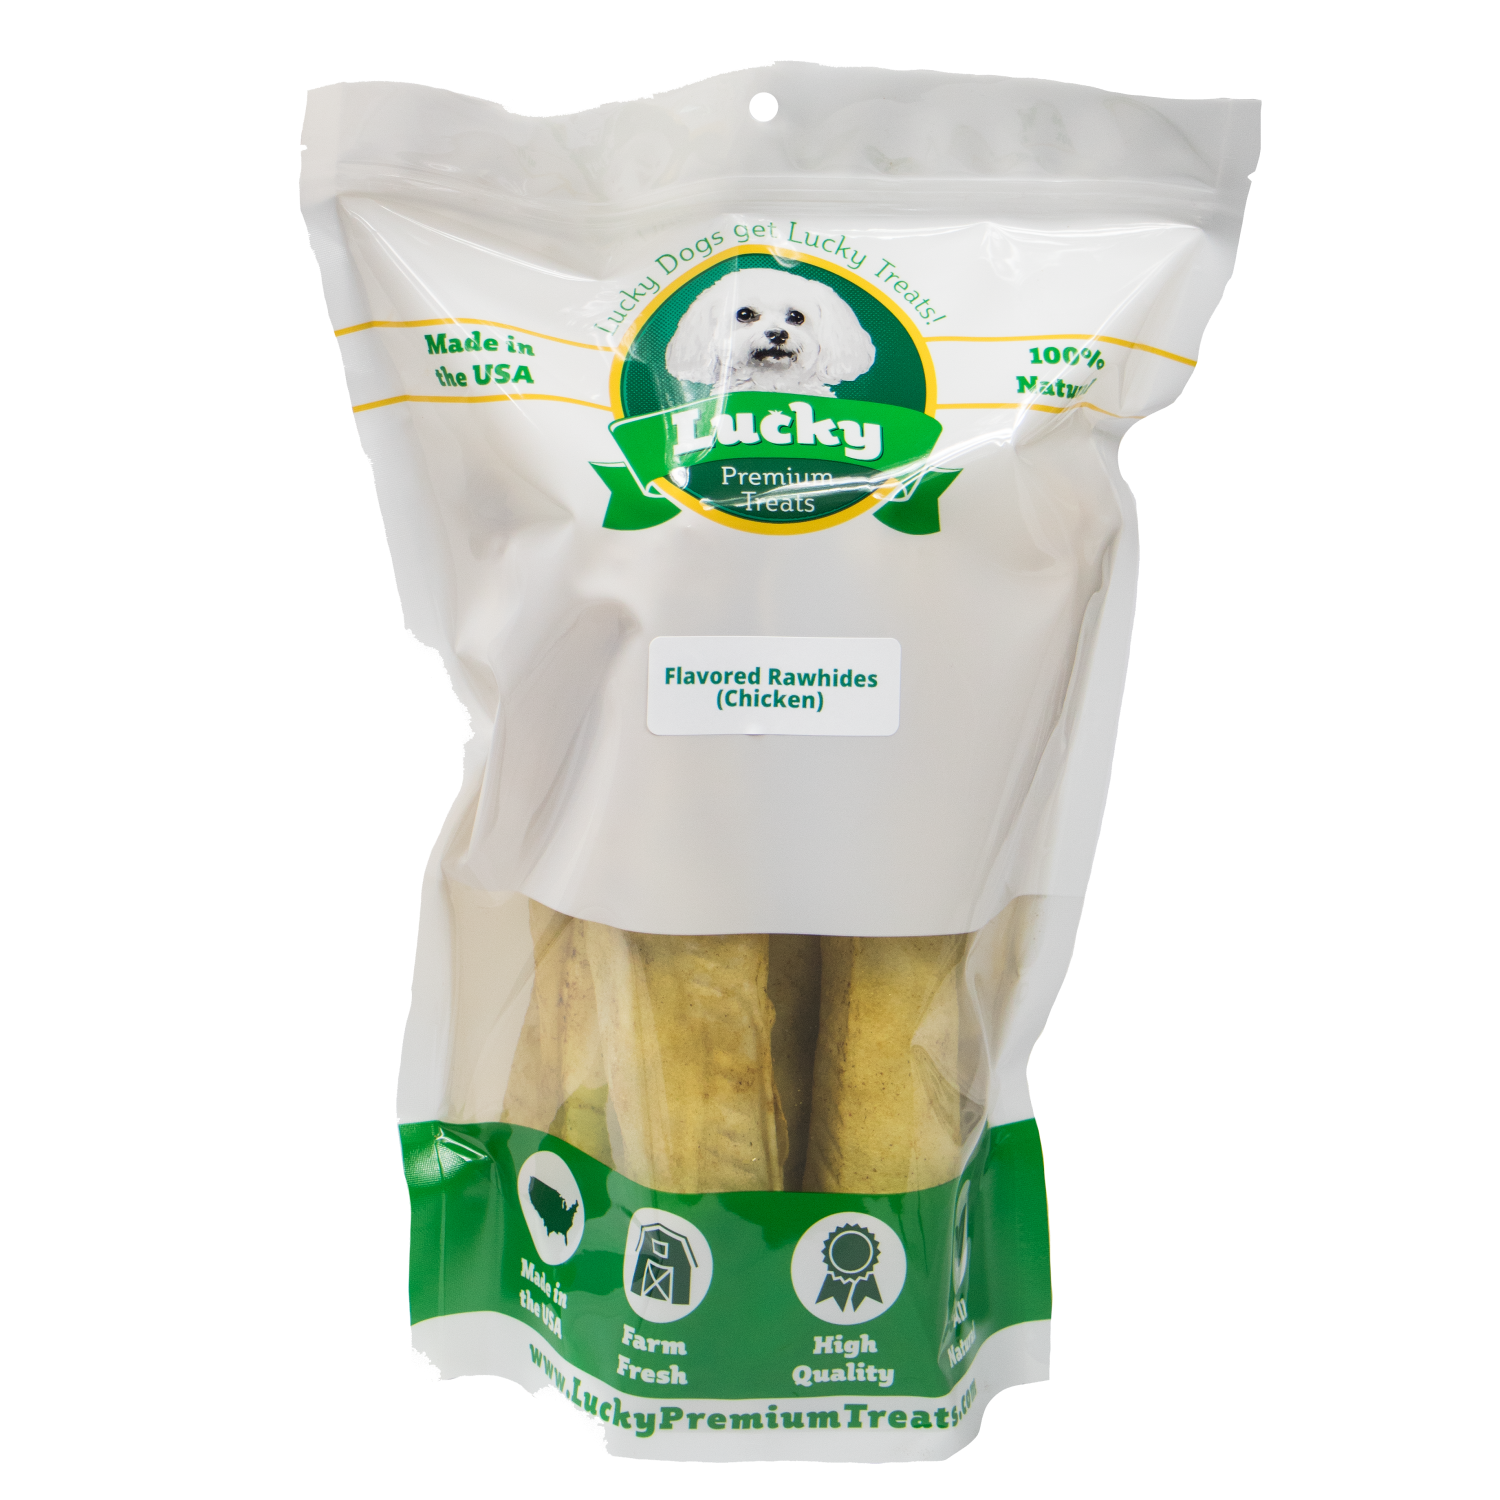 Lucky Premium Treats Chicken Flavor Basted Rawhide Bull Sticks Dog Treats for Large Dogs, Bag